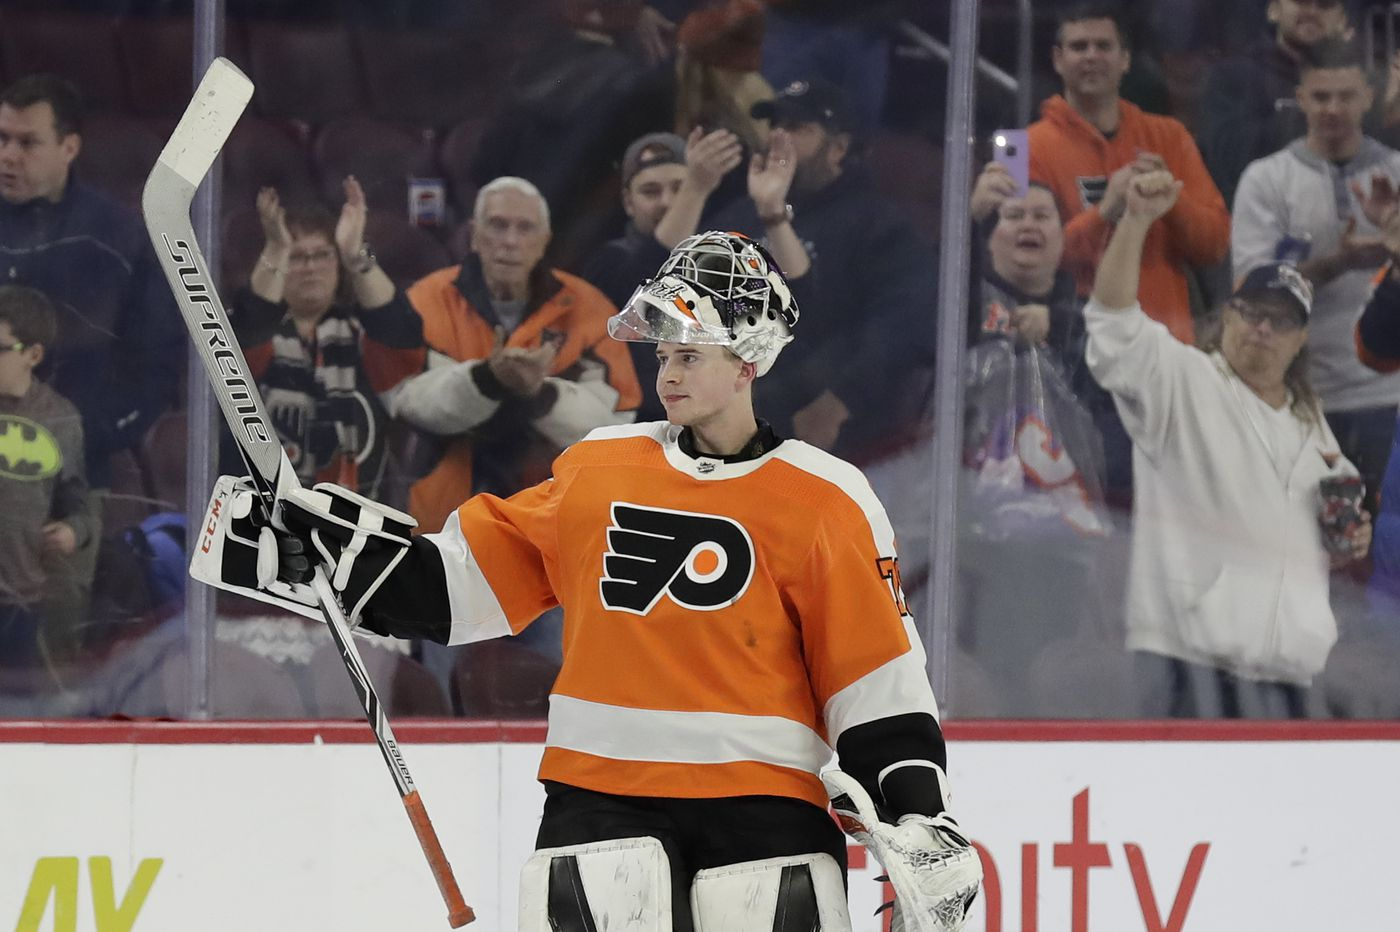 Carter Hart, an early Christmas present to Flyers fans, may alter GM Chuck Fletcher's trade plans | Sam Carchidi